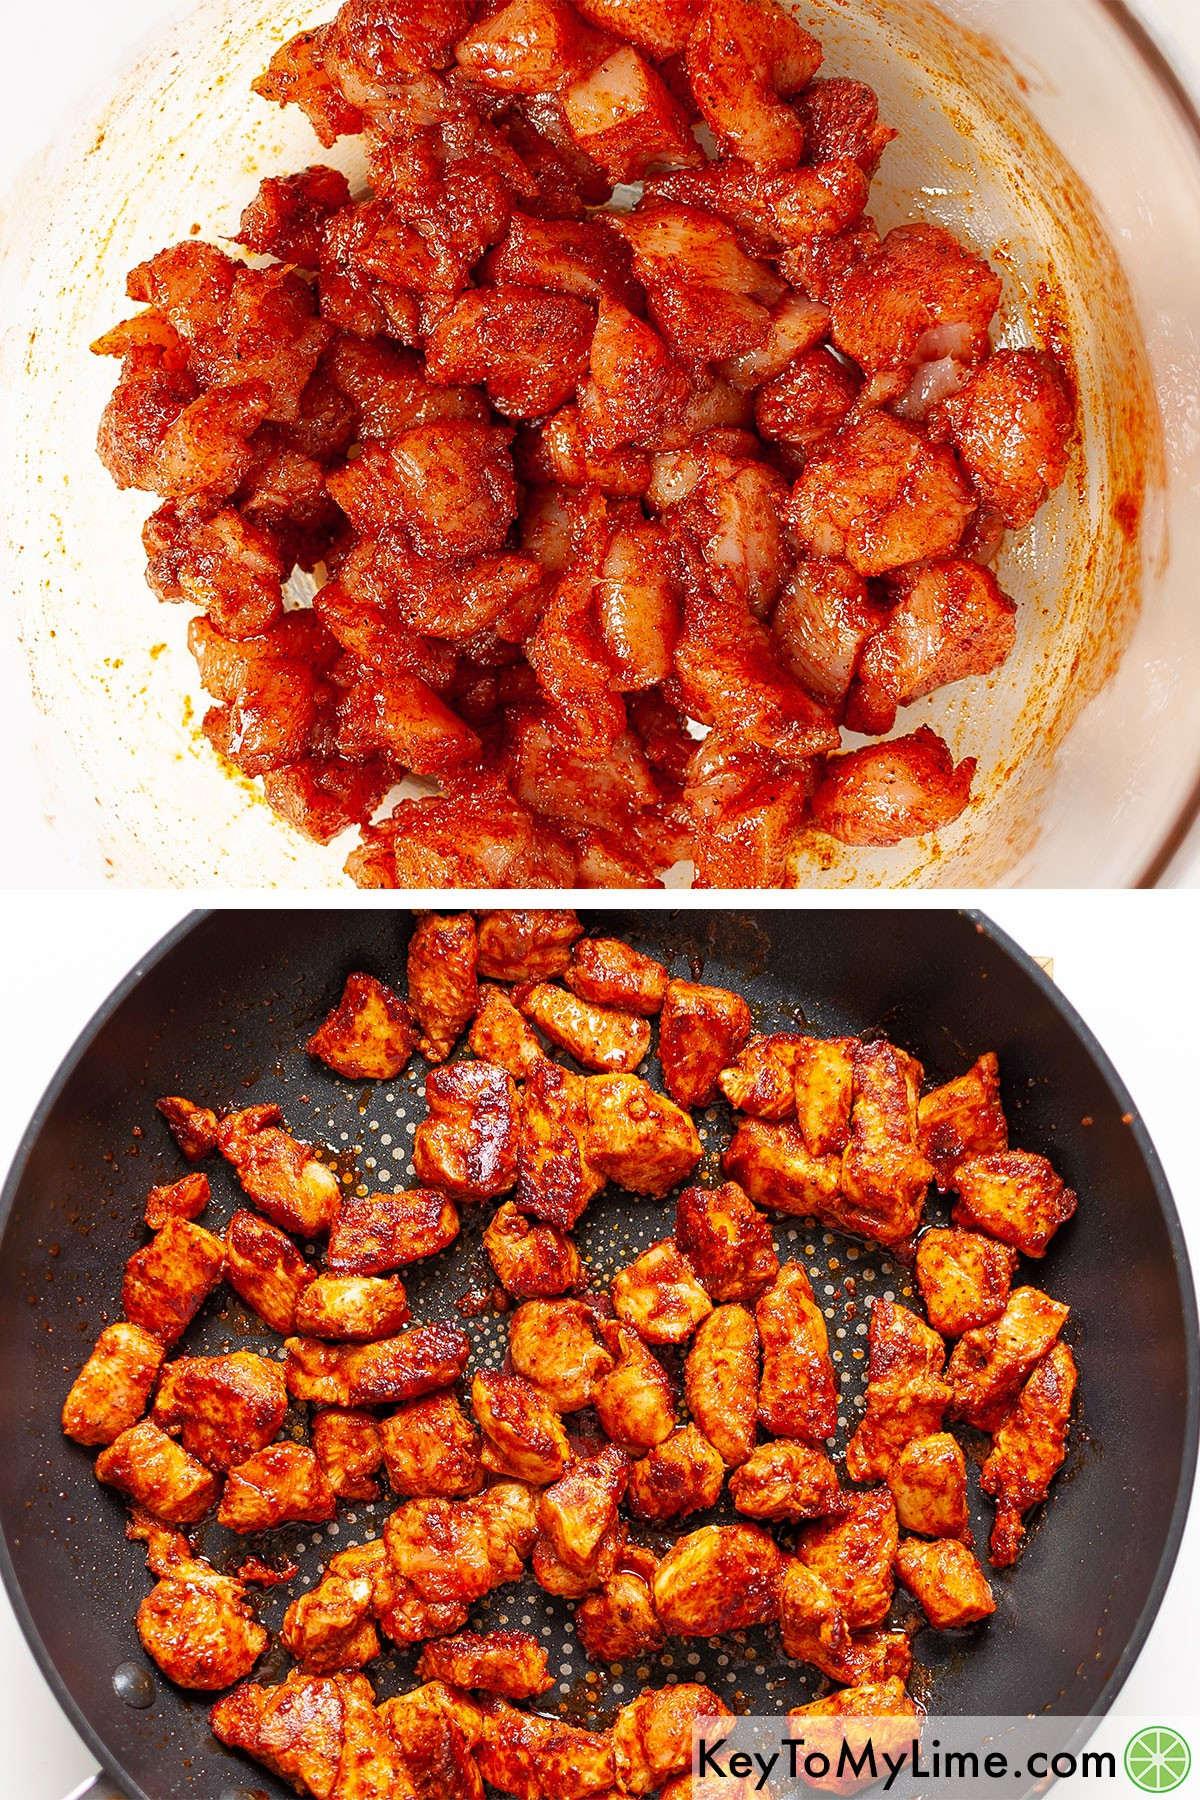 Seasoned chunks of chicken breast before and after cooking.